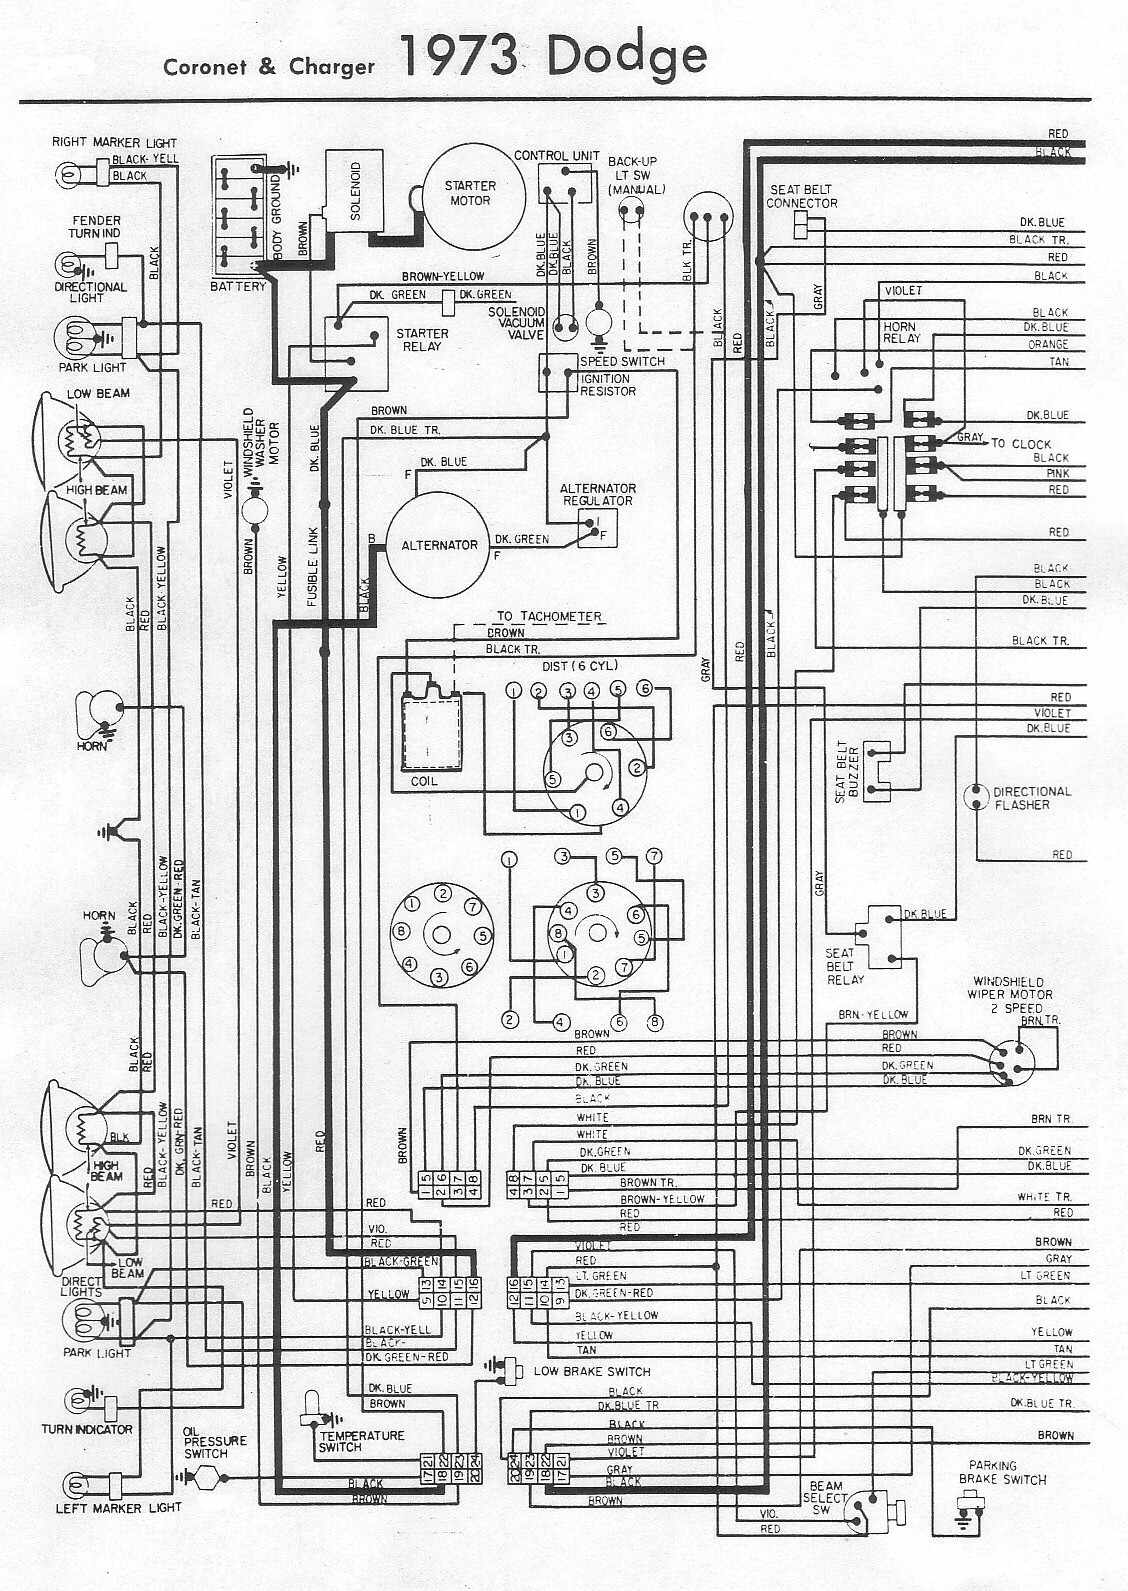 1967 charger wiring diagram wiring diagram rh 25 fomly be